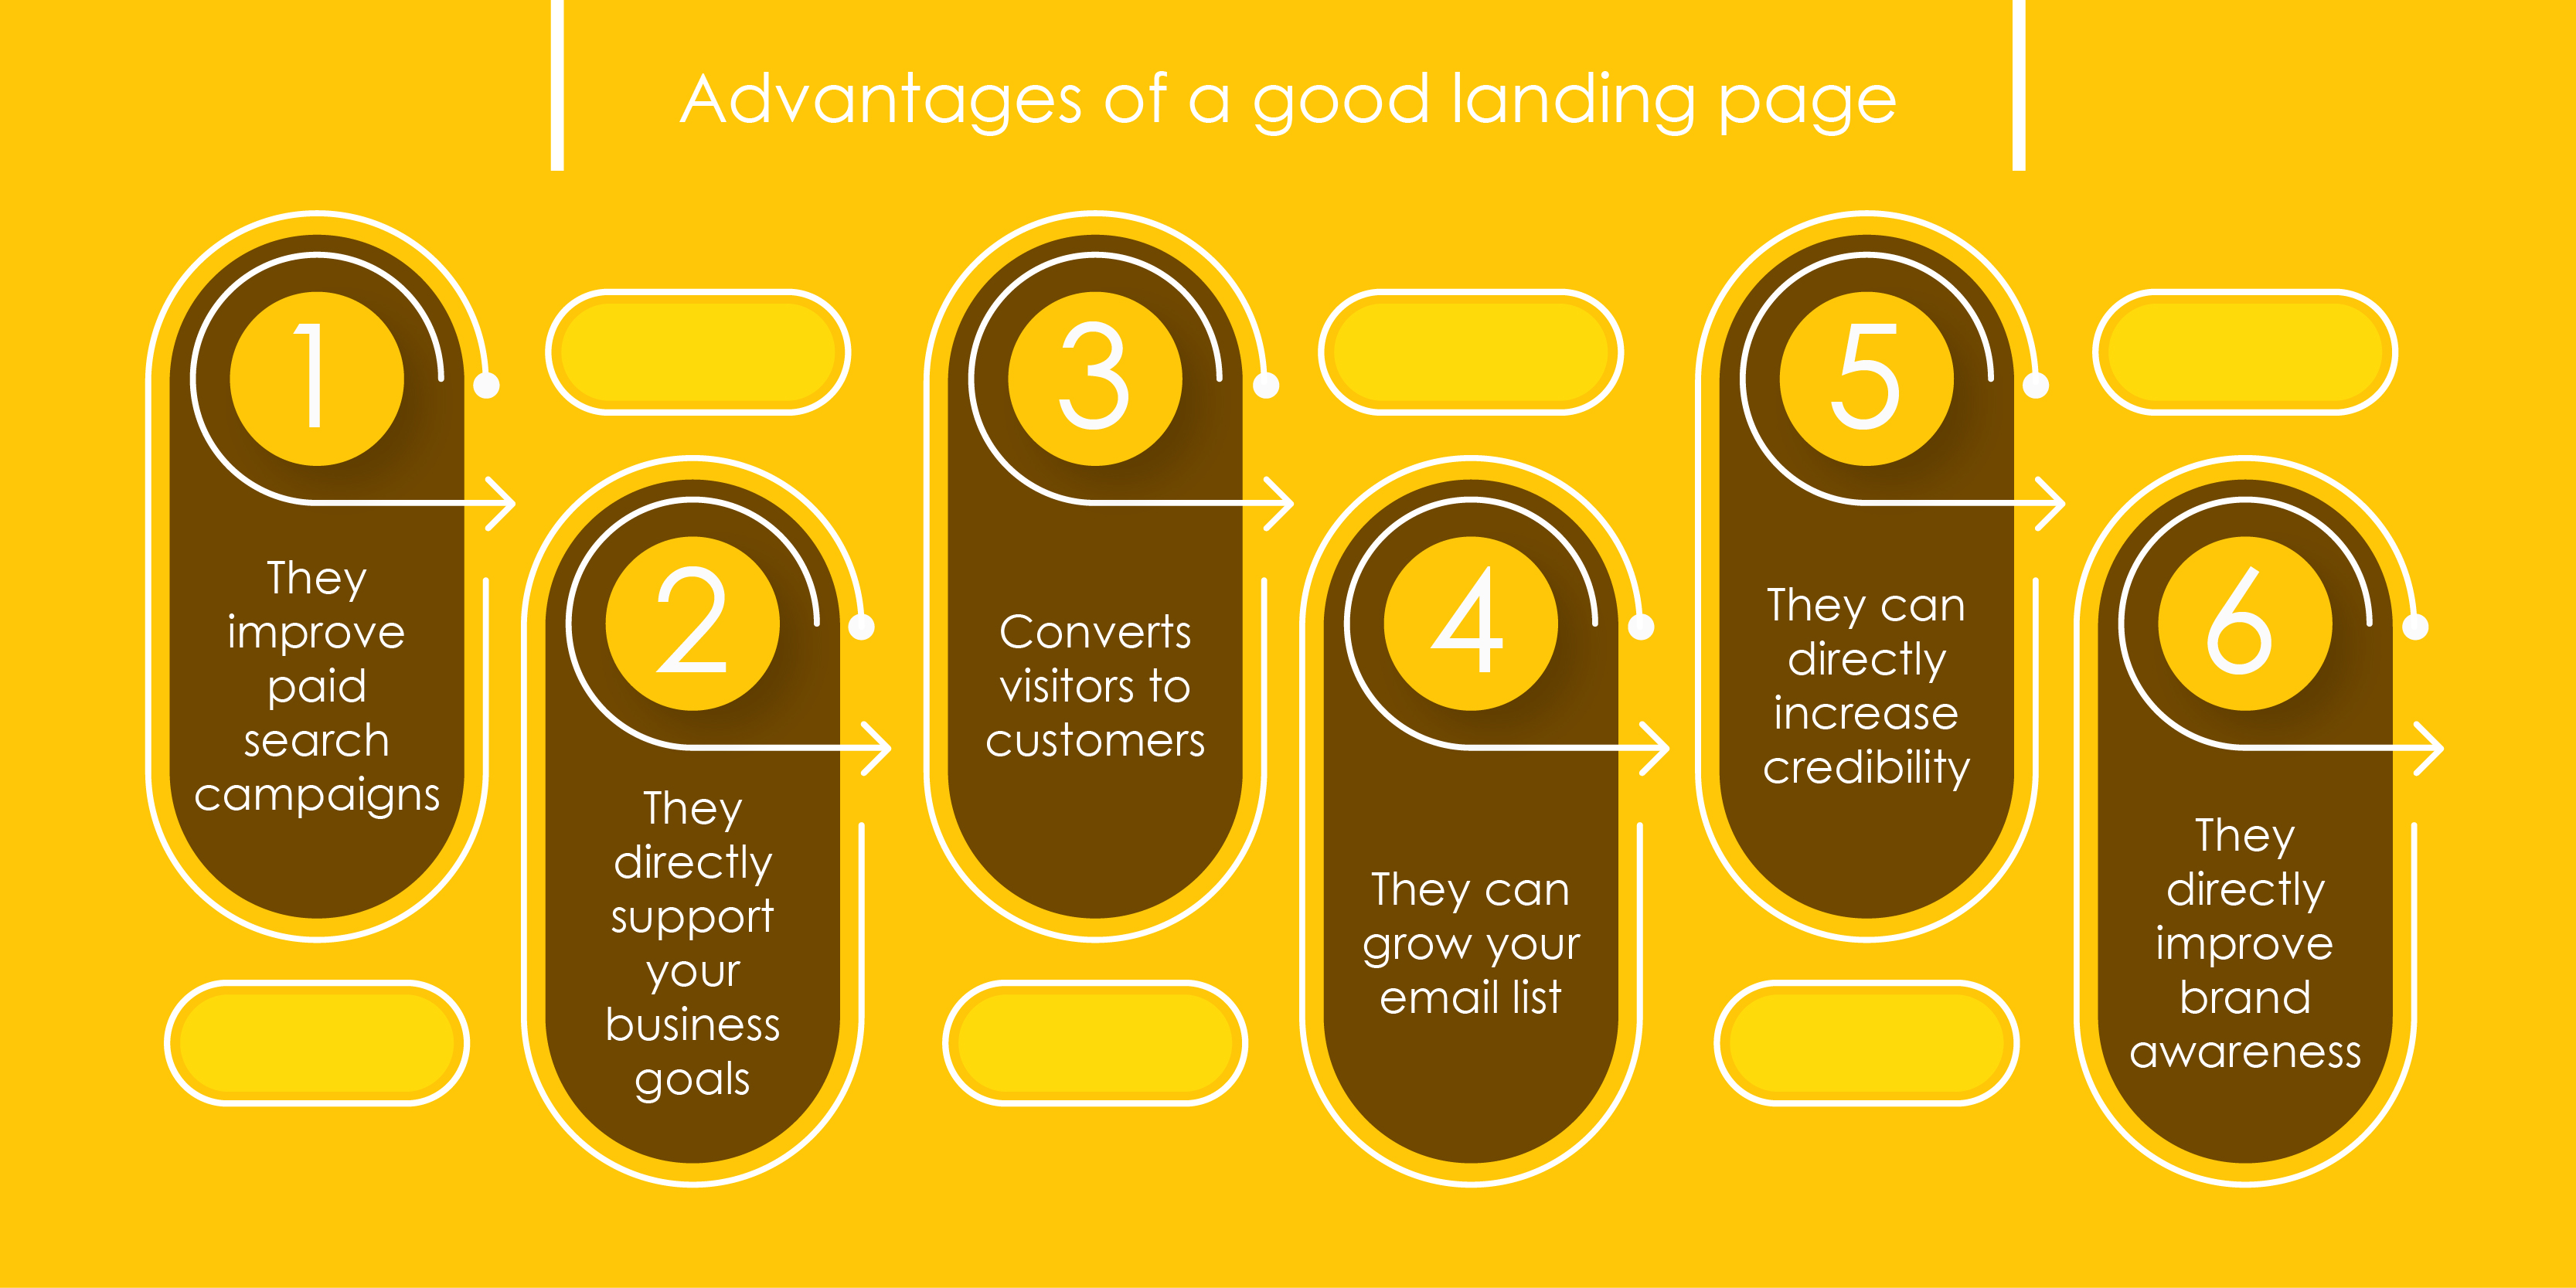 advantages-of-landing-page